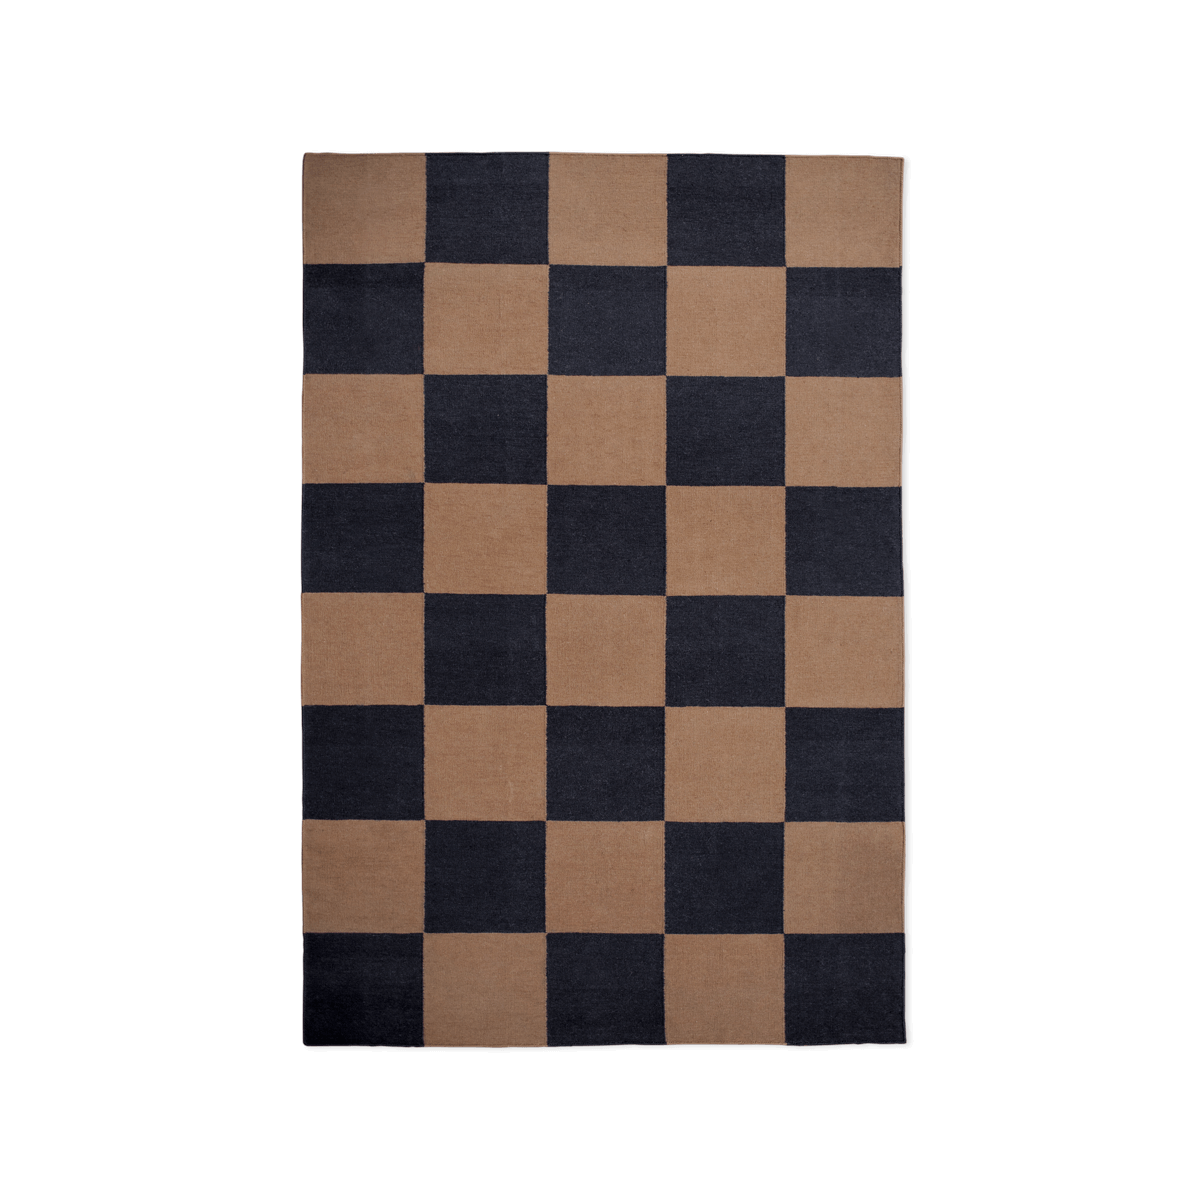 Product image of the flatweave rug Square in the color Tobacco. The rug has a check pattern in the colors sage tobacco brown and black.